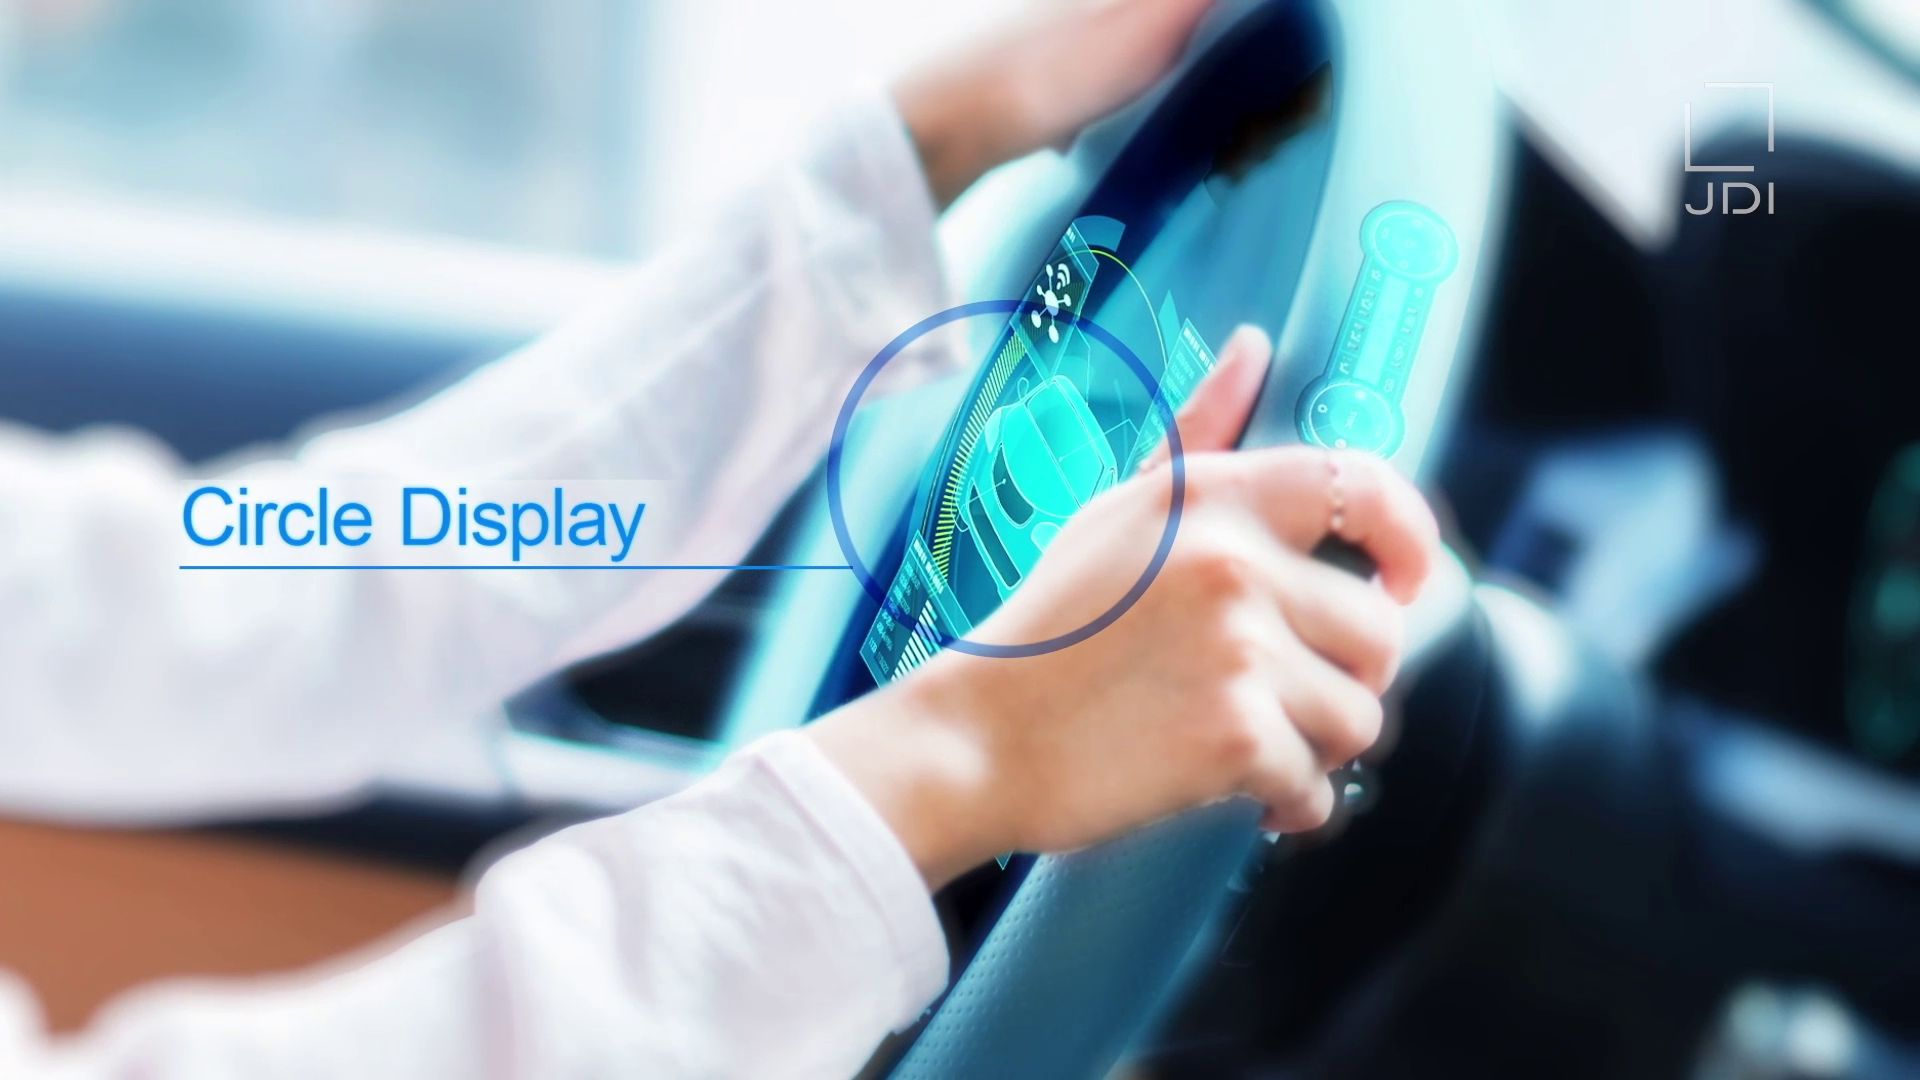 Automotive_Display_JDI_Europe